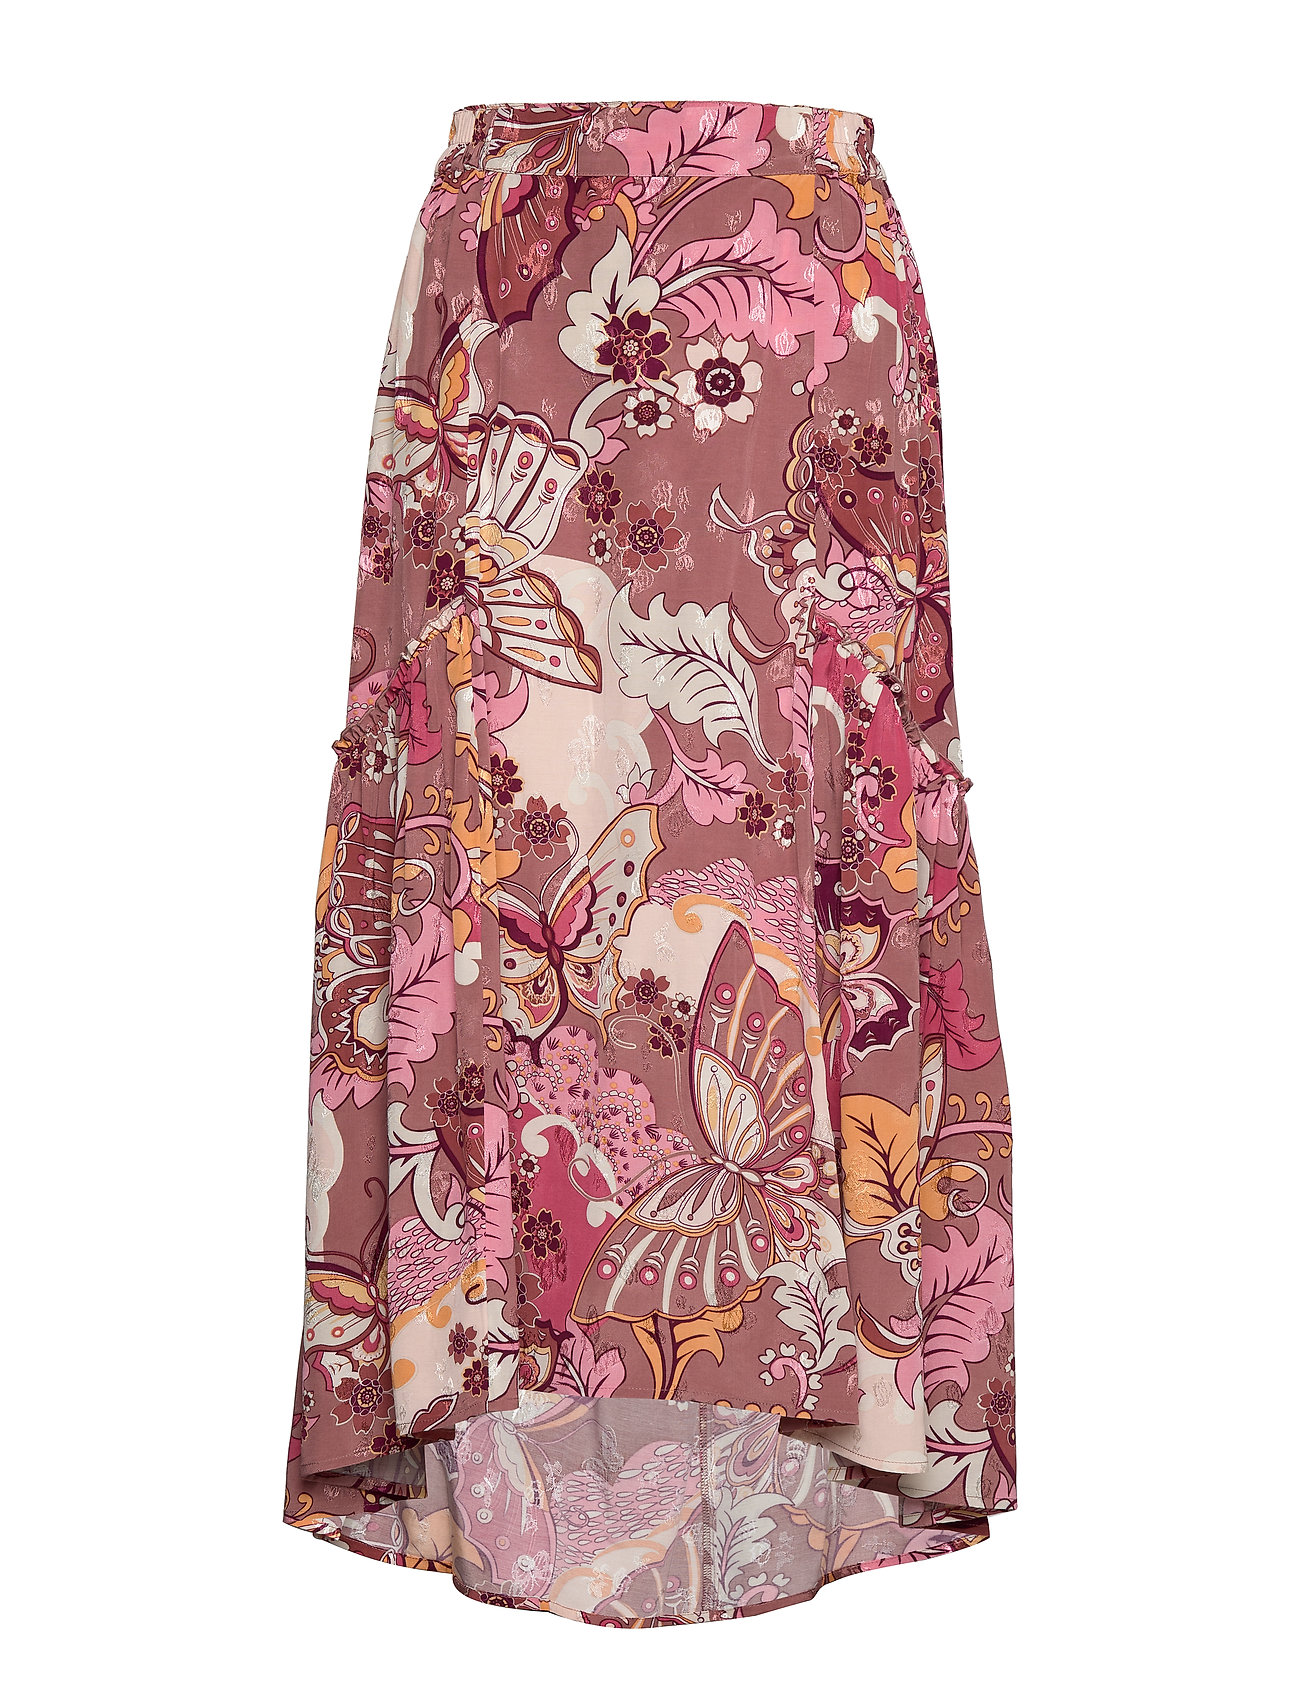 ODD MOLLY Puzzle Me Together Skirt - RED TAUPE